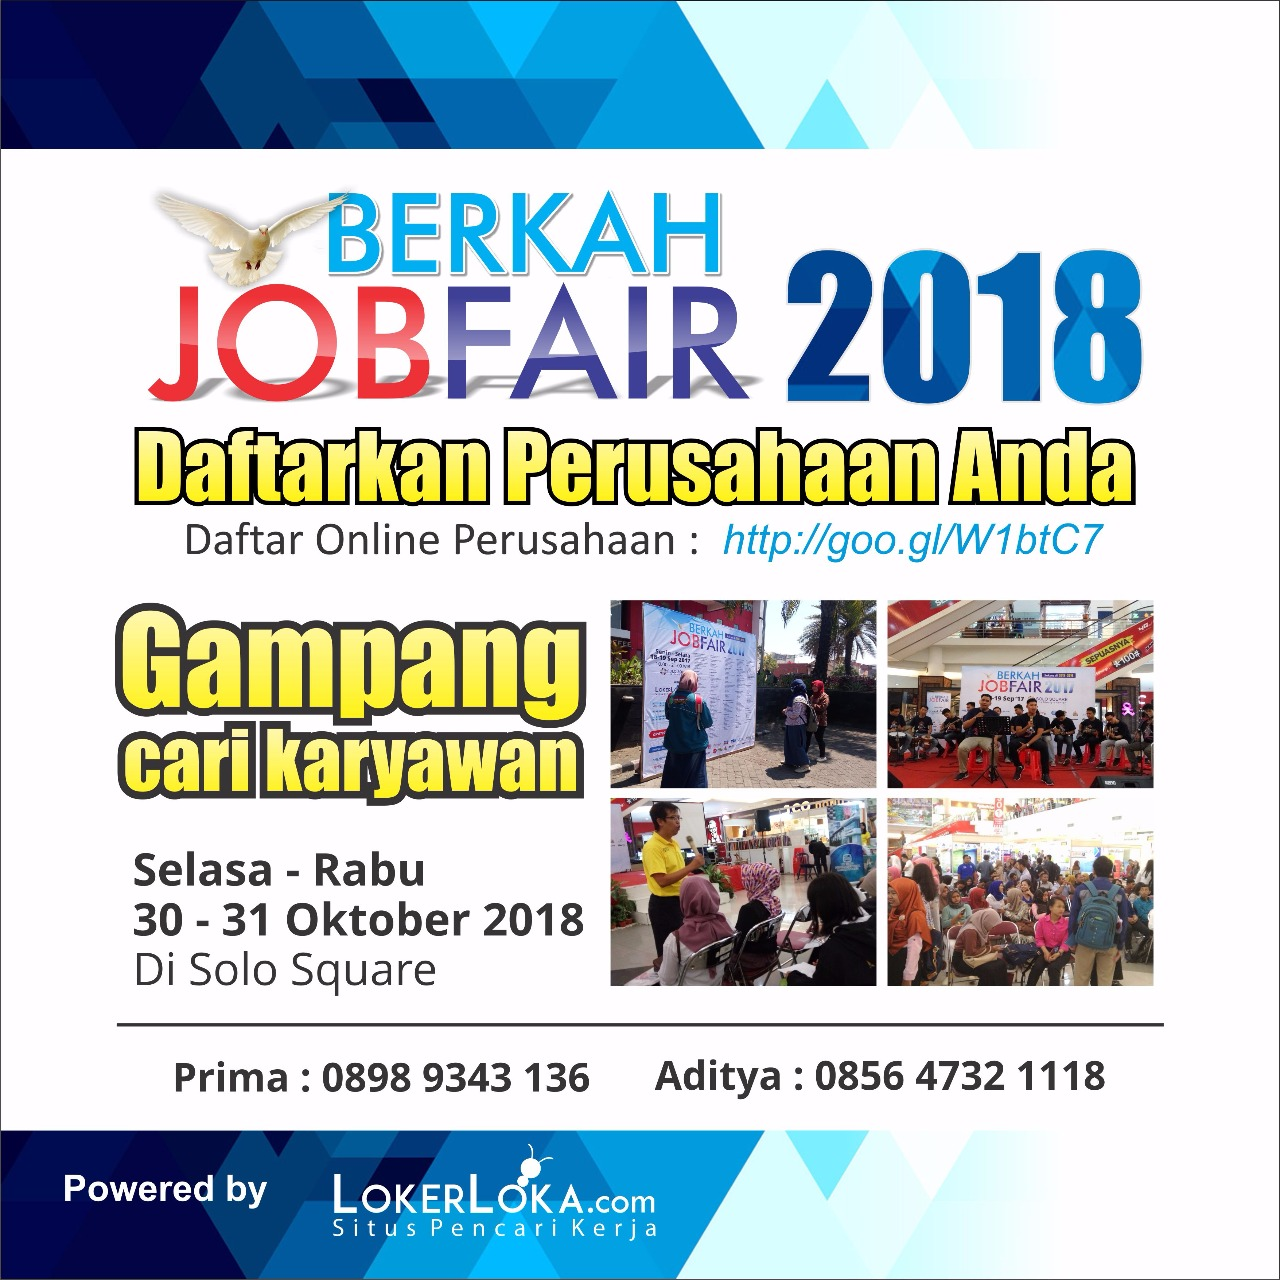 Berkah Job Fair - Solo Square Mall, 30-31 Oktober 2018